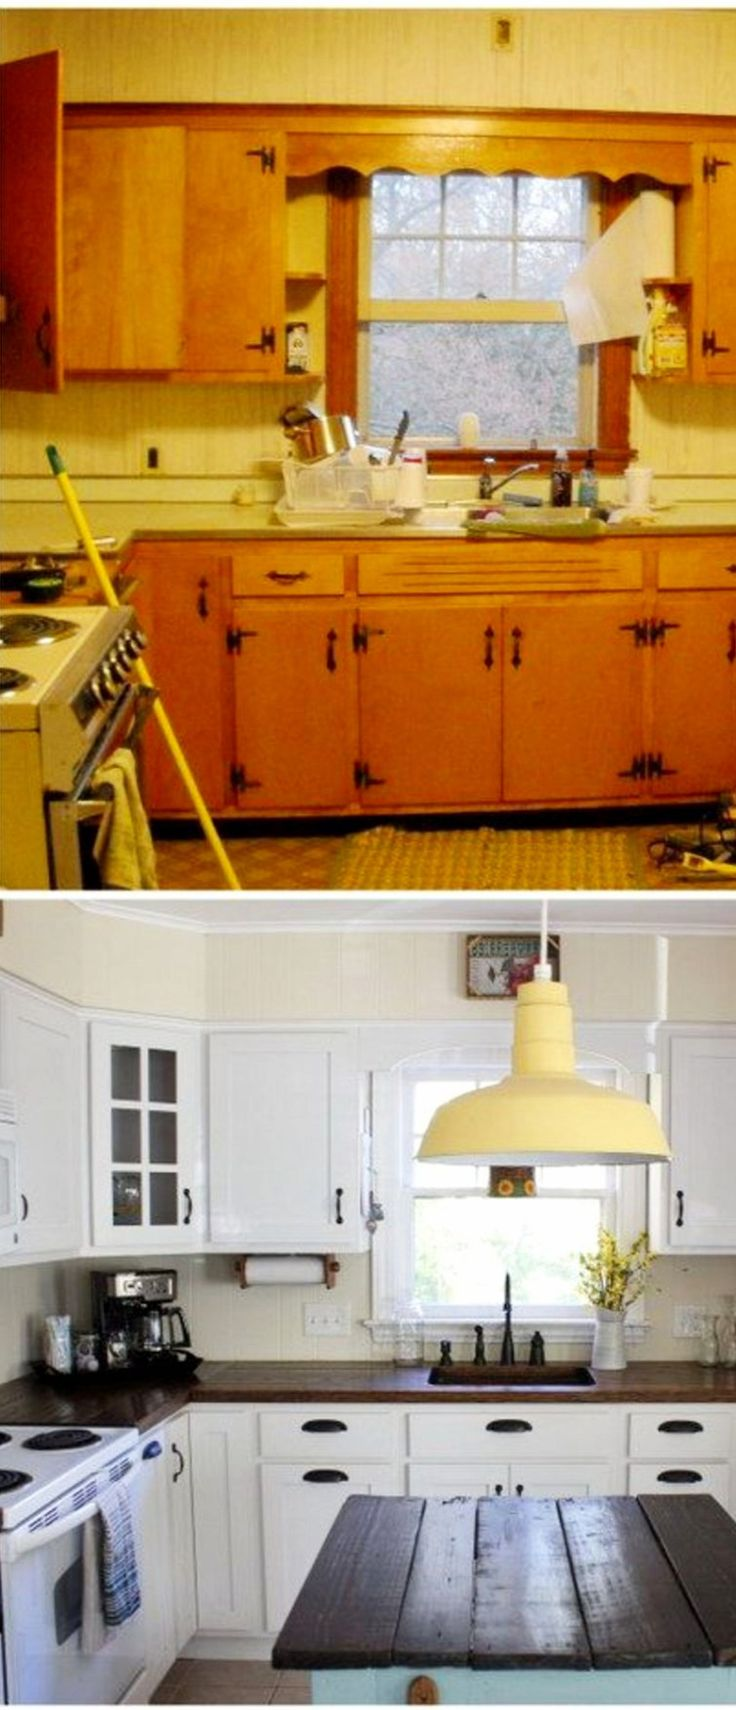 Small kitchen makeovers before and after - small kitchens remodel ideas and pictures